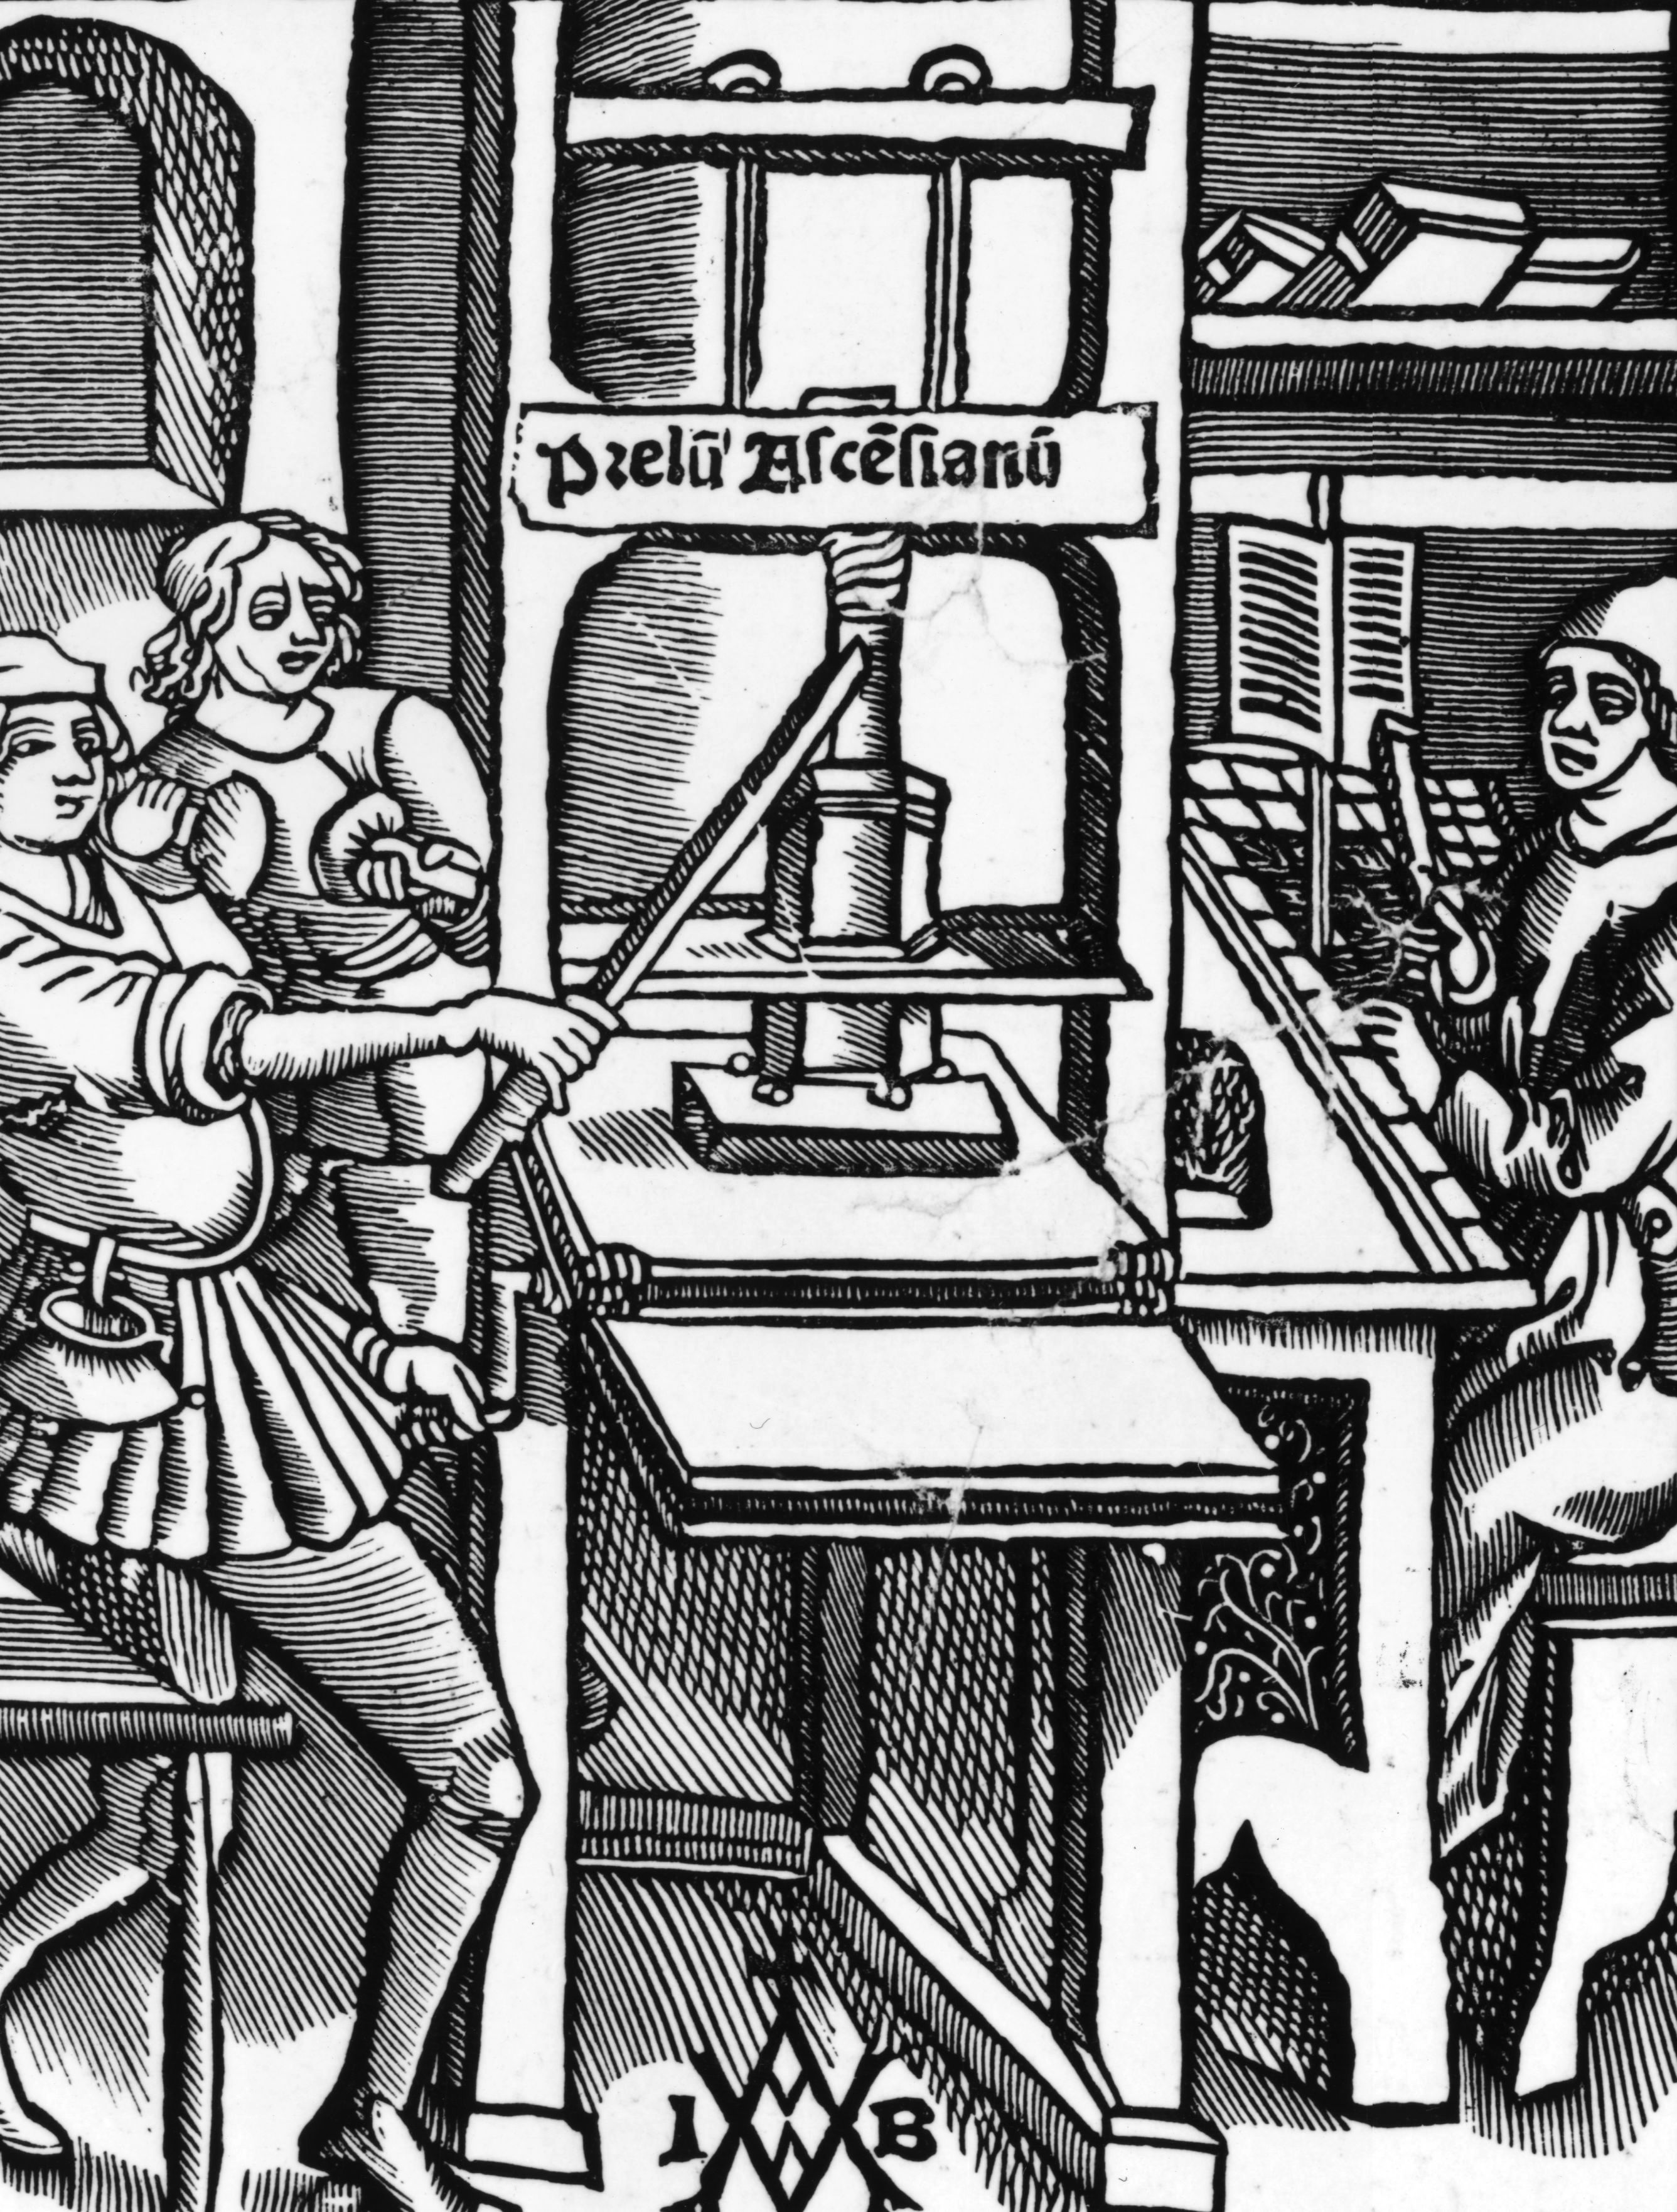 printing_press_-_gettyimages-51240544